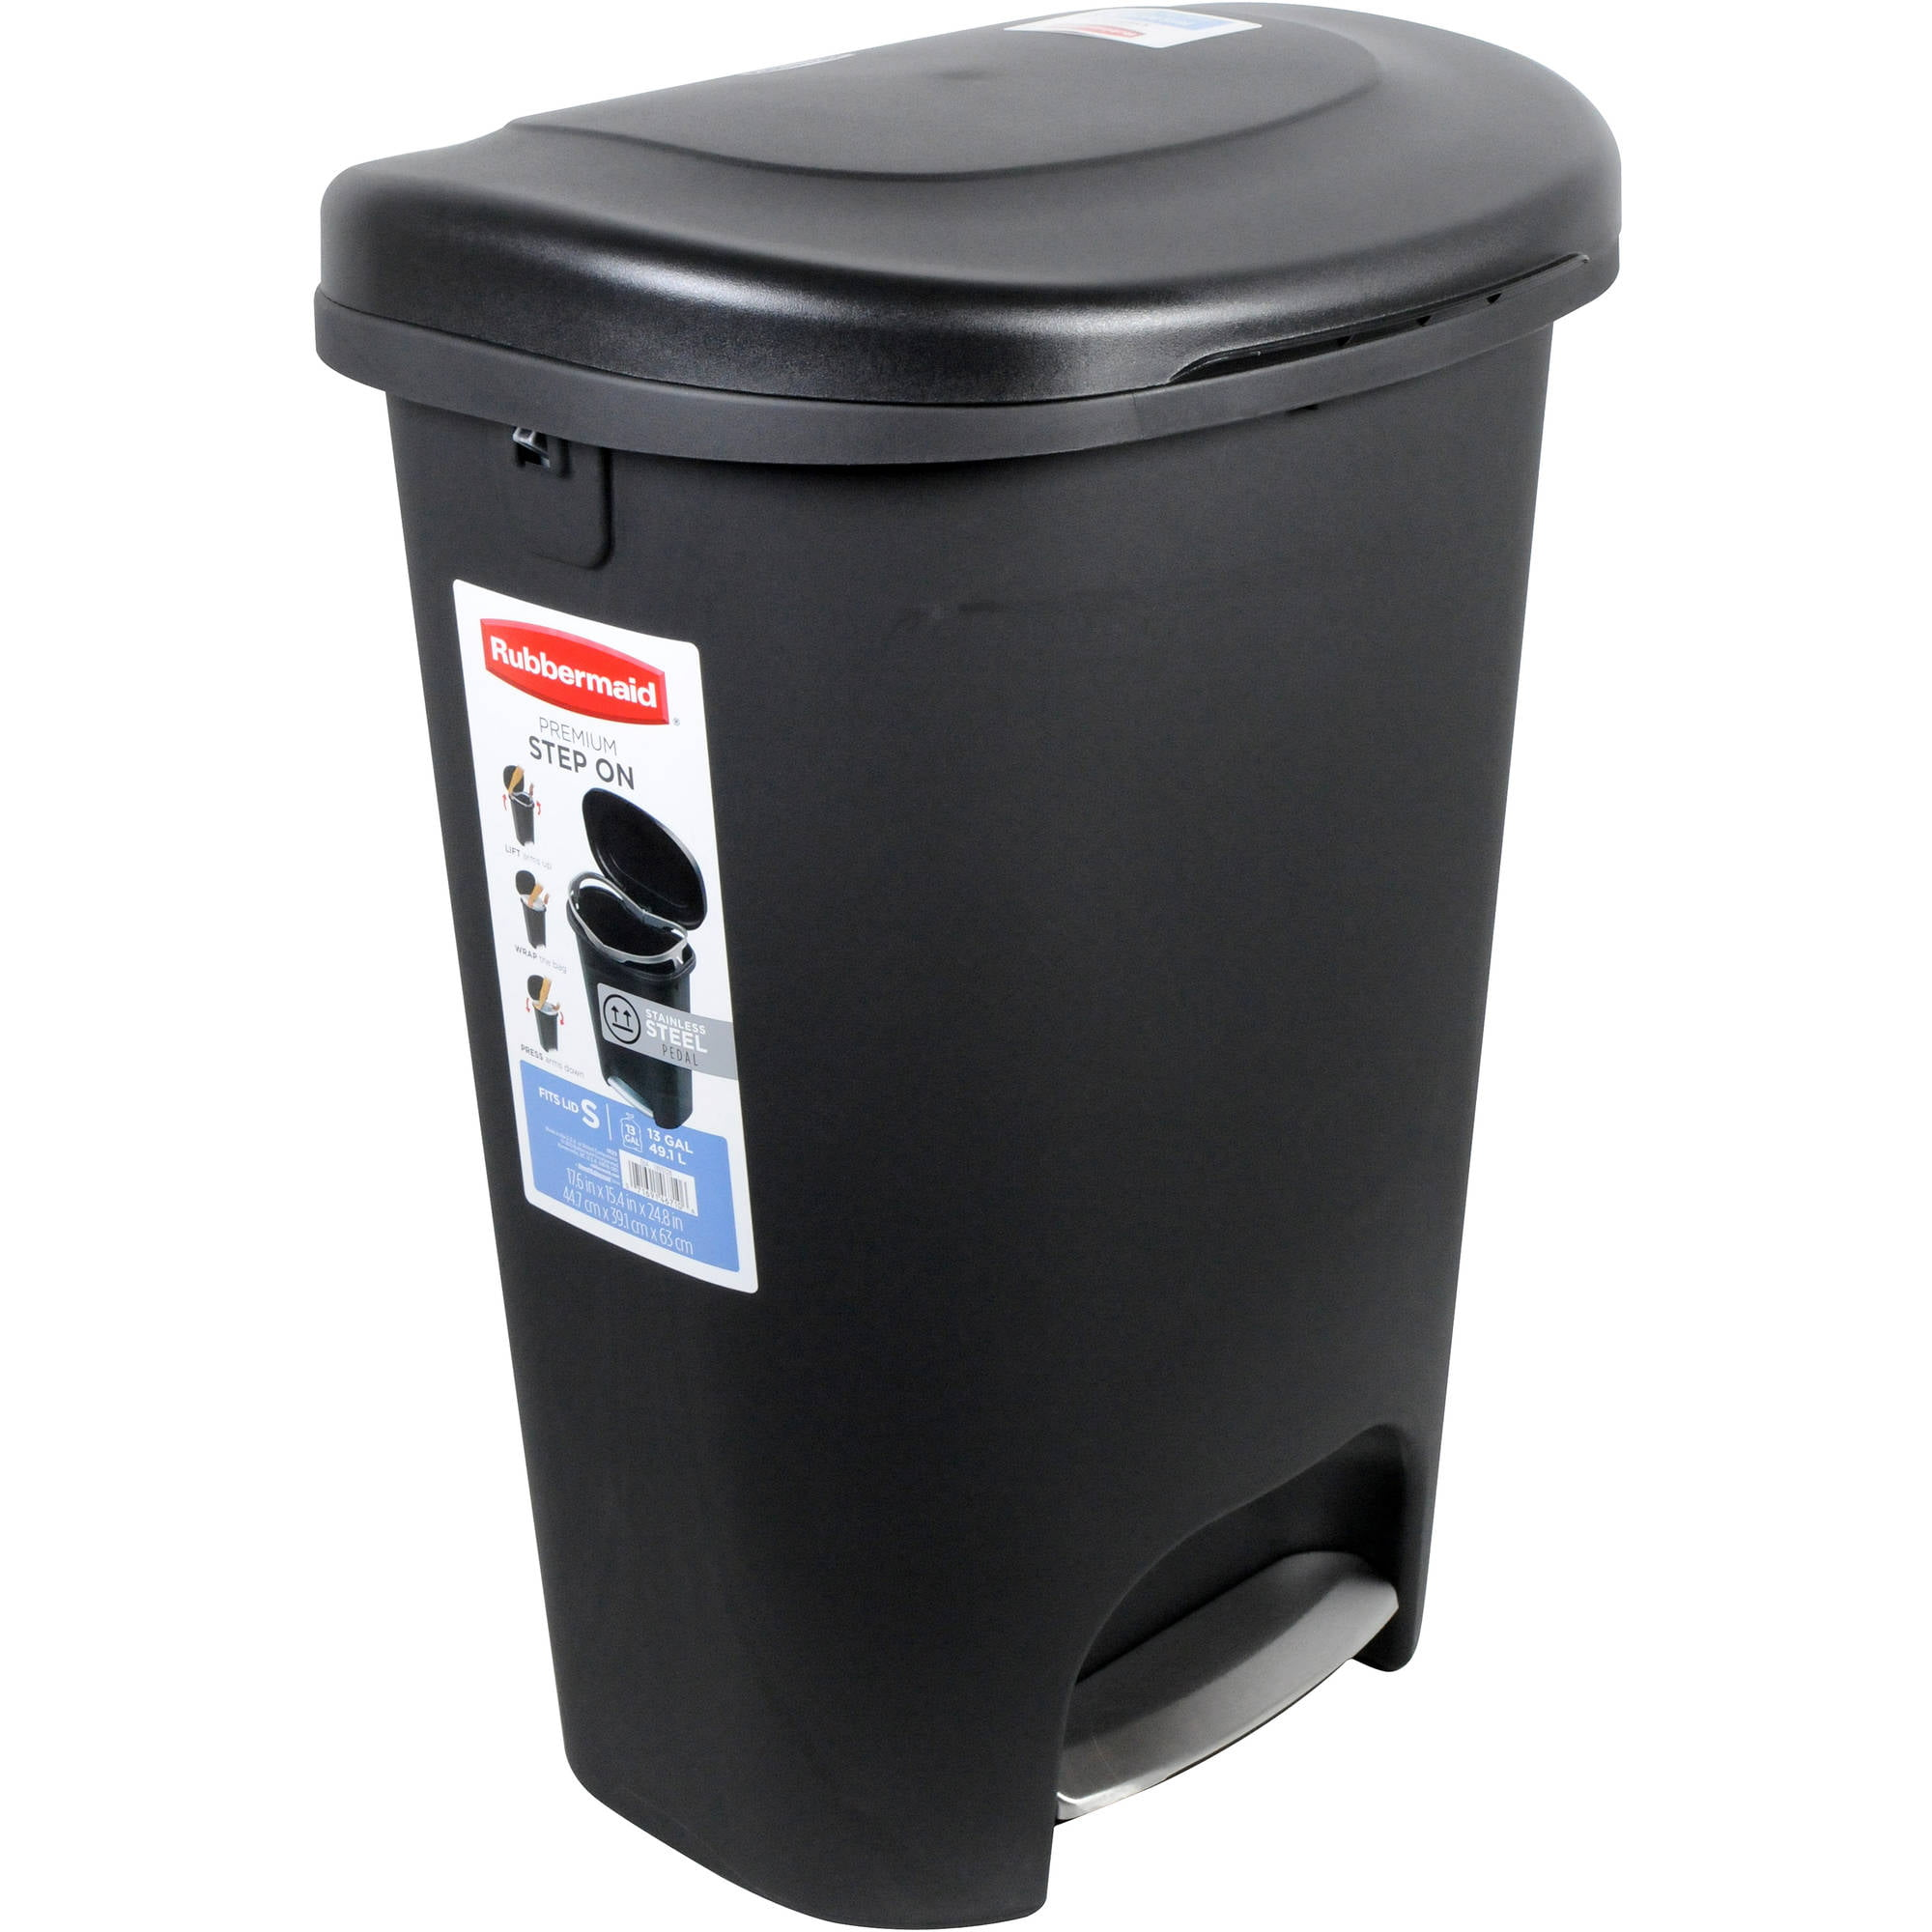 Rubbermaid Premium Step On Trash Can 13 Gal Black With Metal